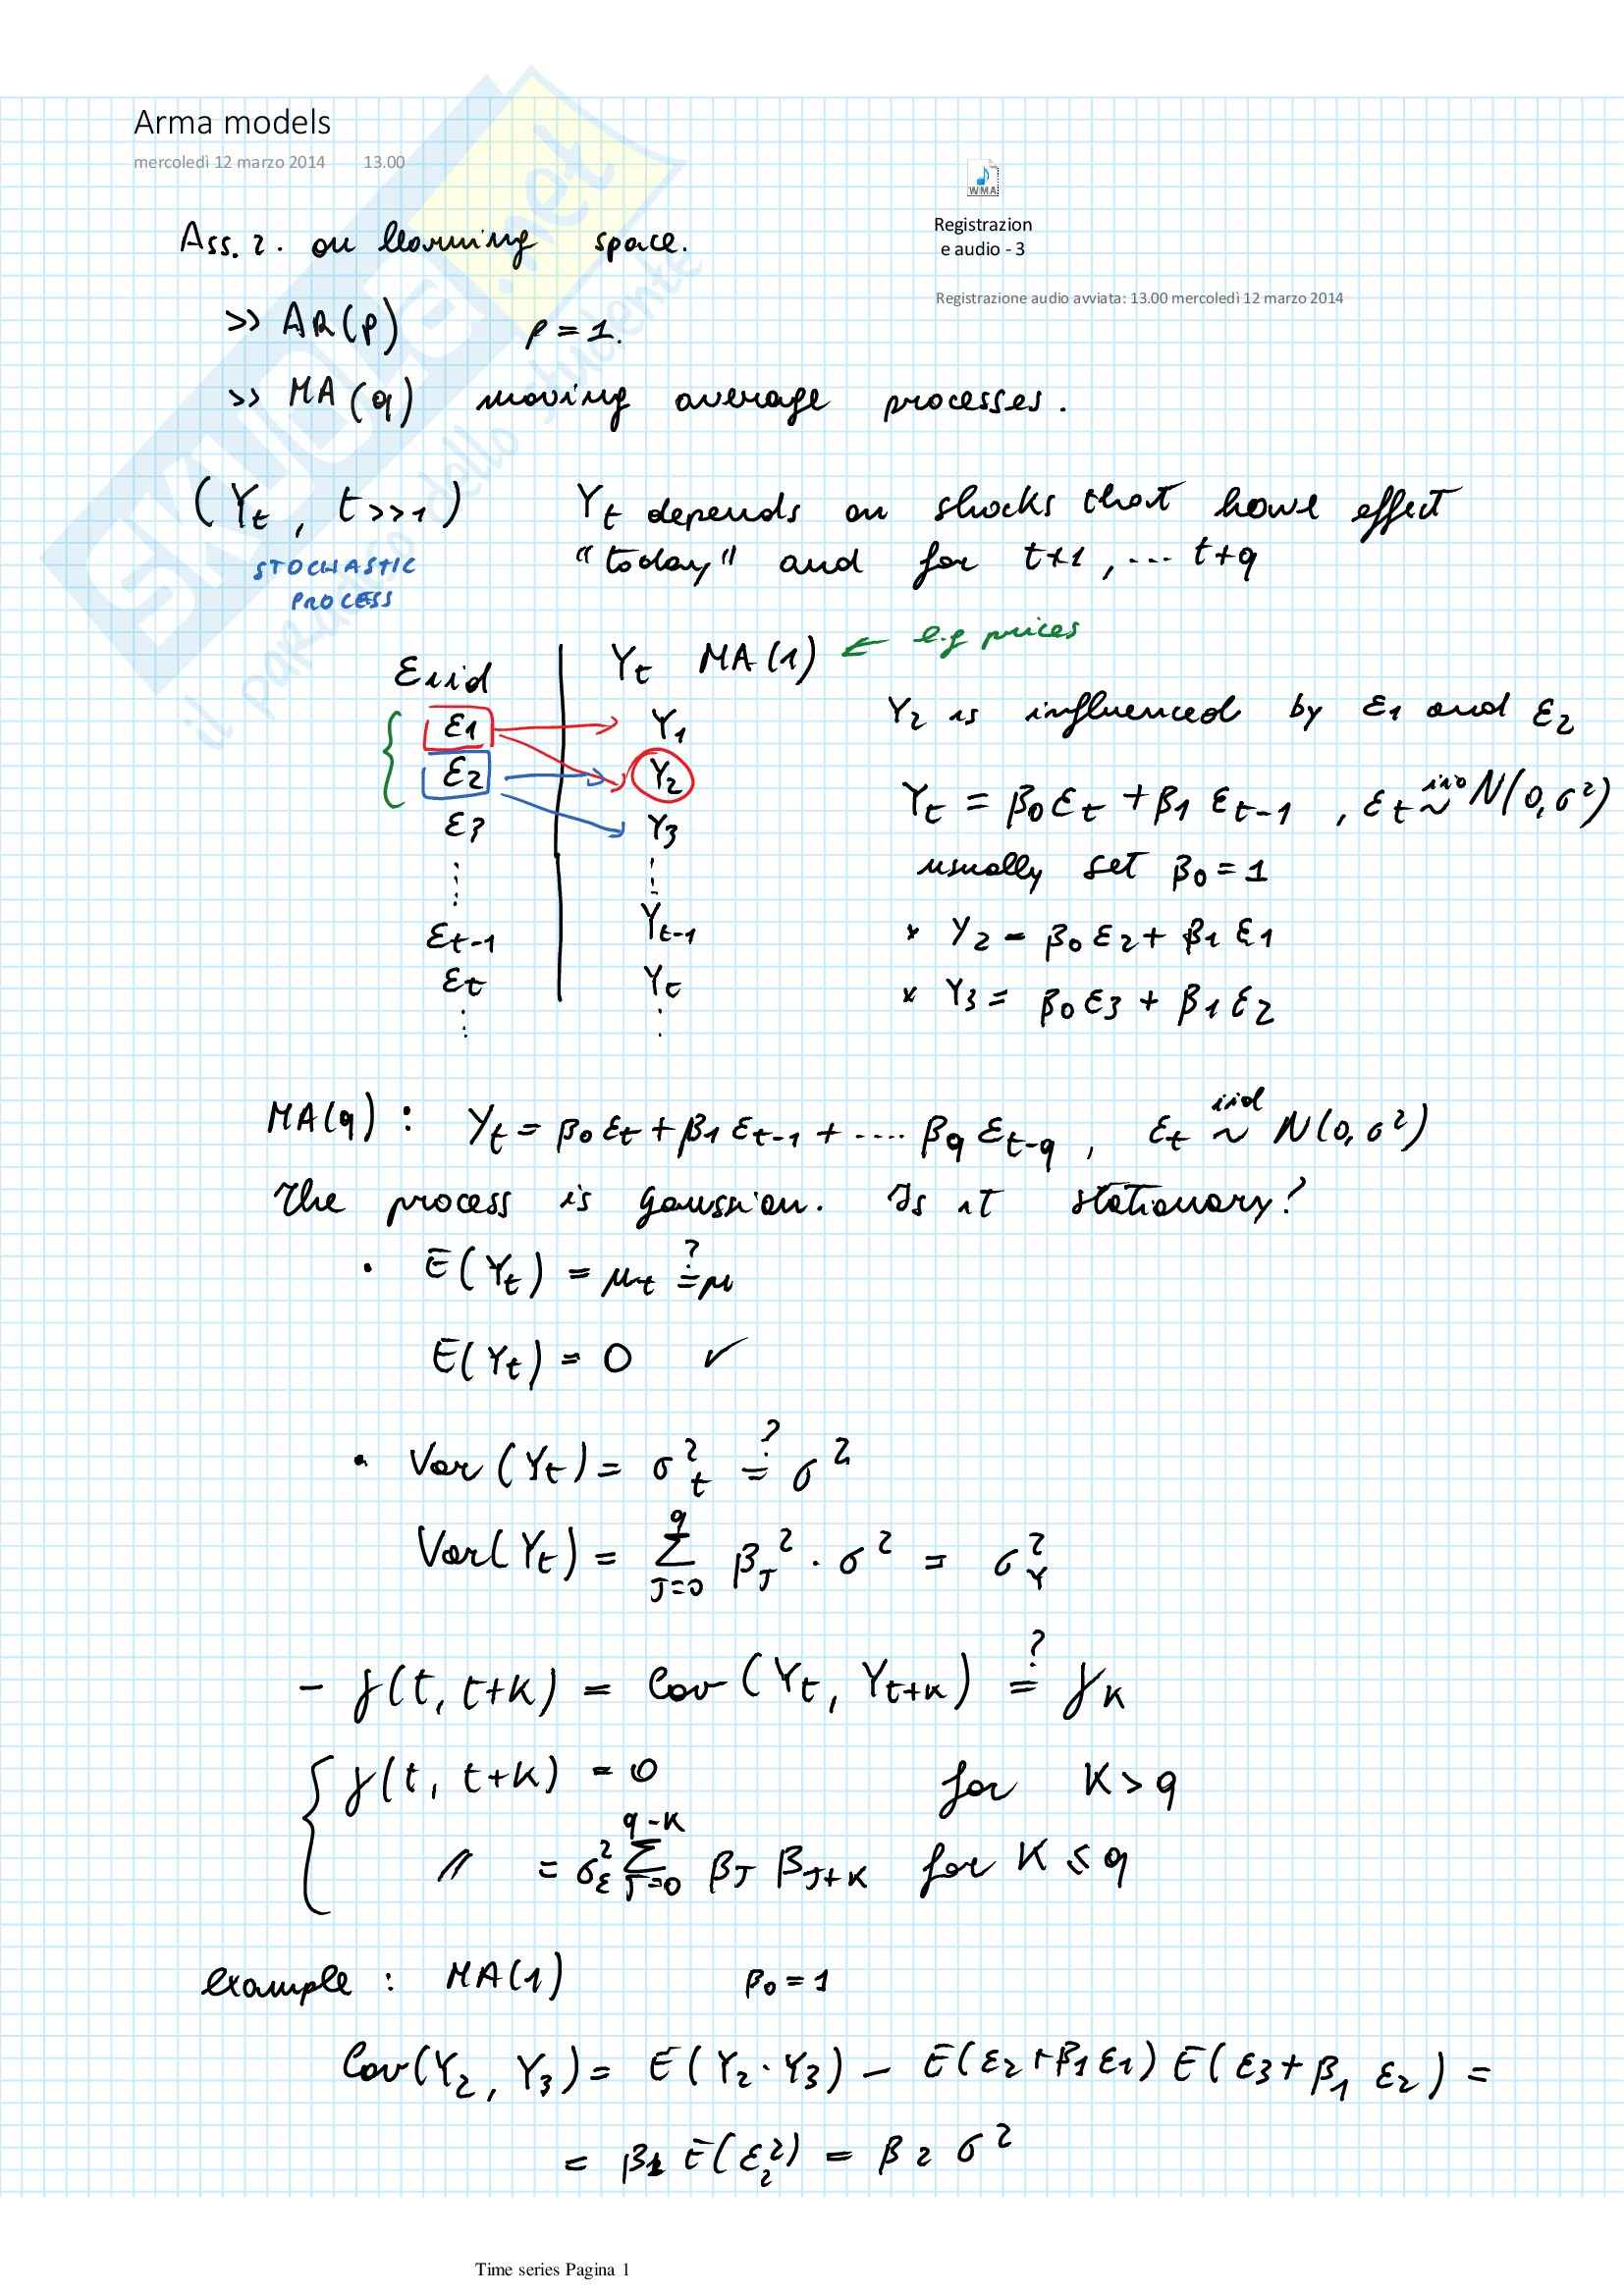 Time series analysis of economic and financial data - Appunti Pag. 36